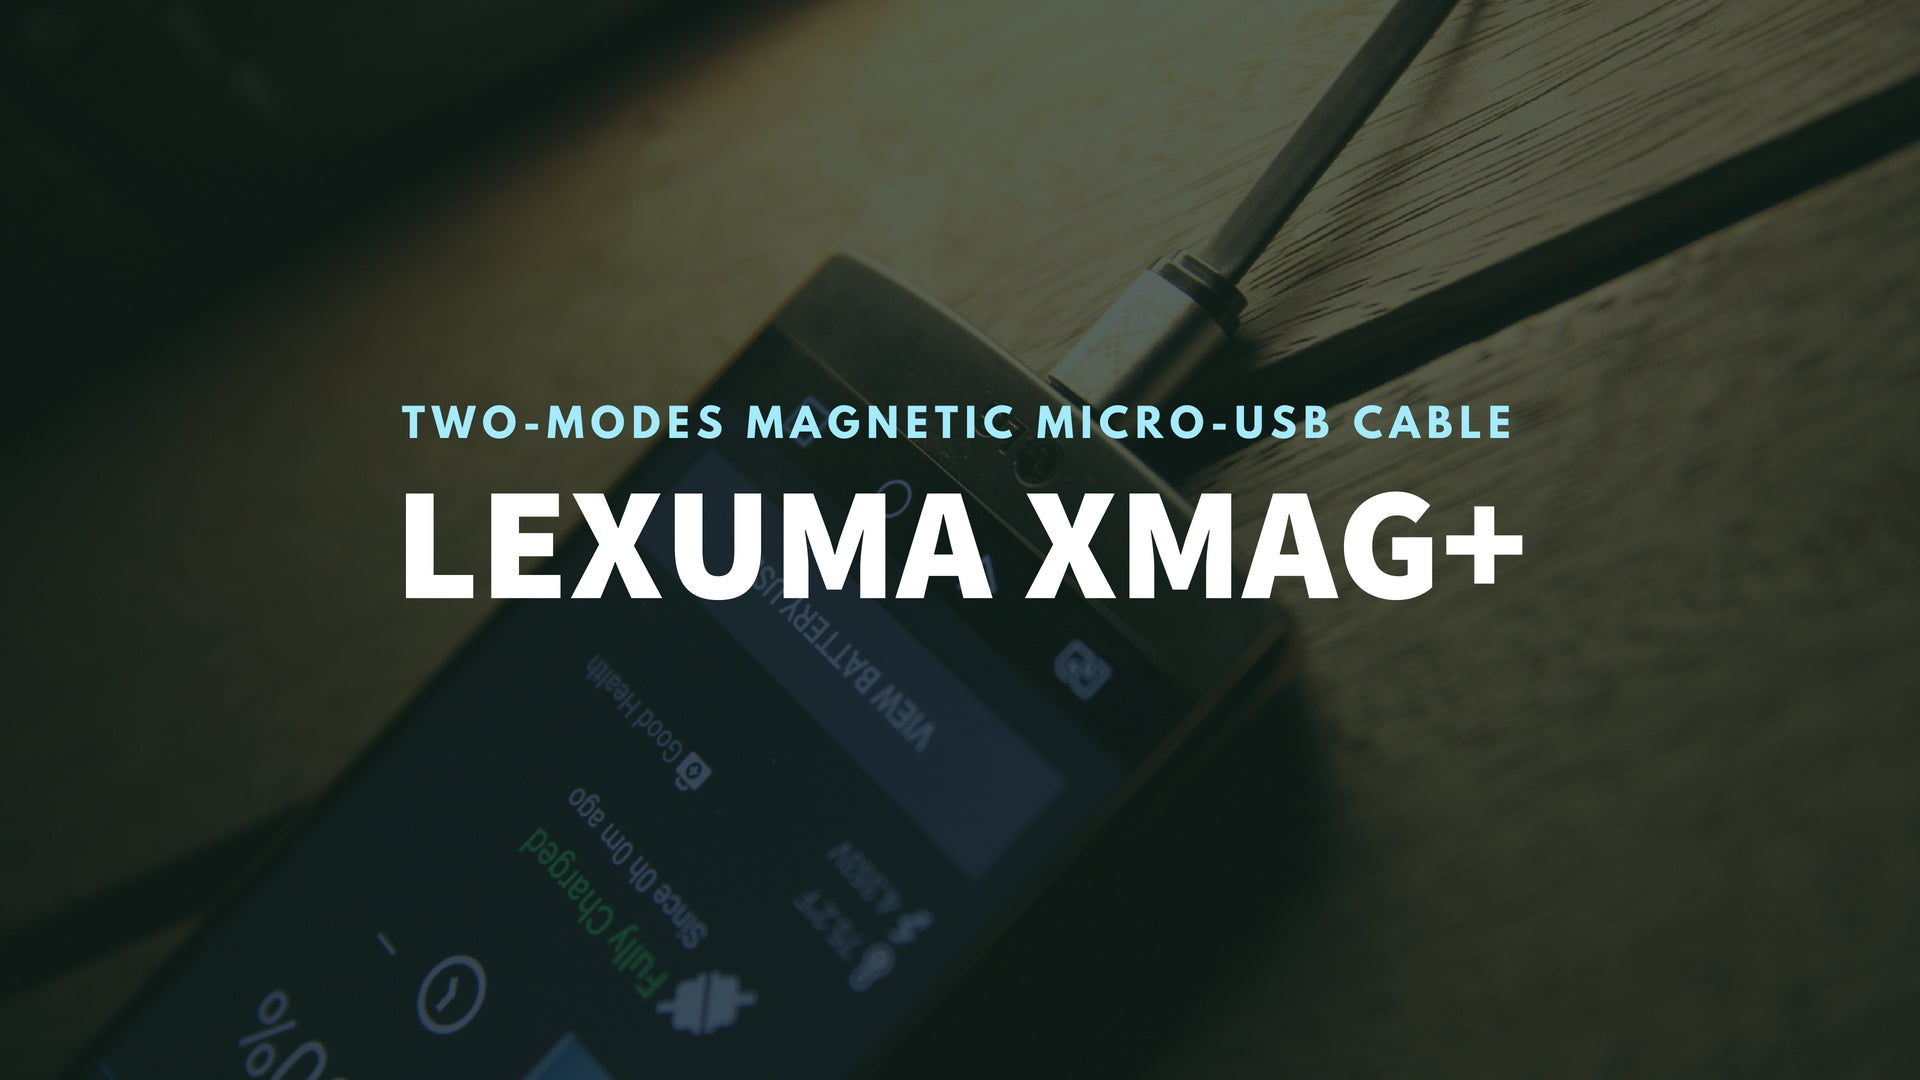 Lexuma XMag XMAG-MUC-PLUS Magnetic Micro USB Charging Cable (For Android Devices) magnetic charging adapter cable usb c best magnetic charging cable 2019 micro usb to magnetic charger connector review volta magnetic cable data transfer android magnetic usb adapter type c trilobi magnetic cable apple device accessories 2 in 1 charger cable trilobi banner - iMartCity